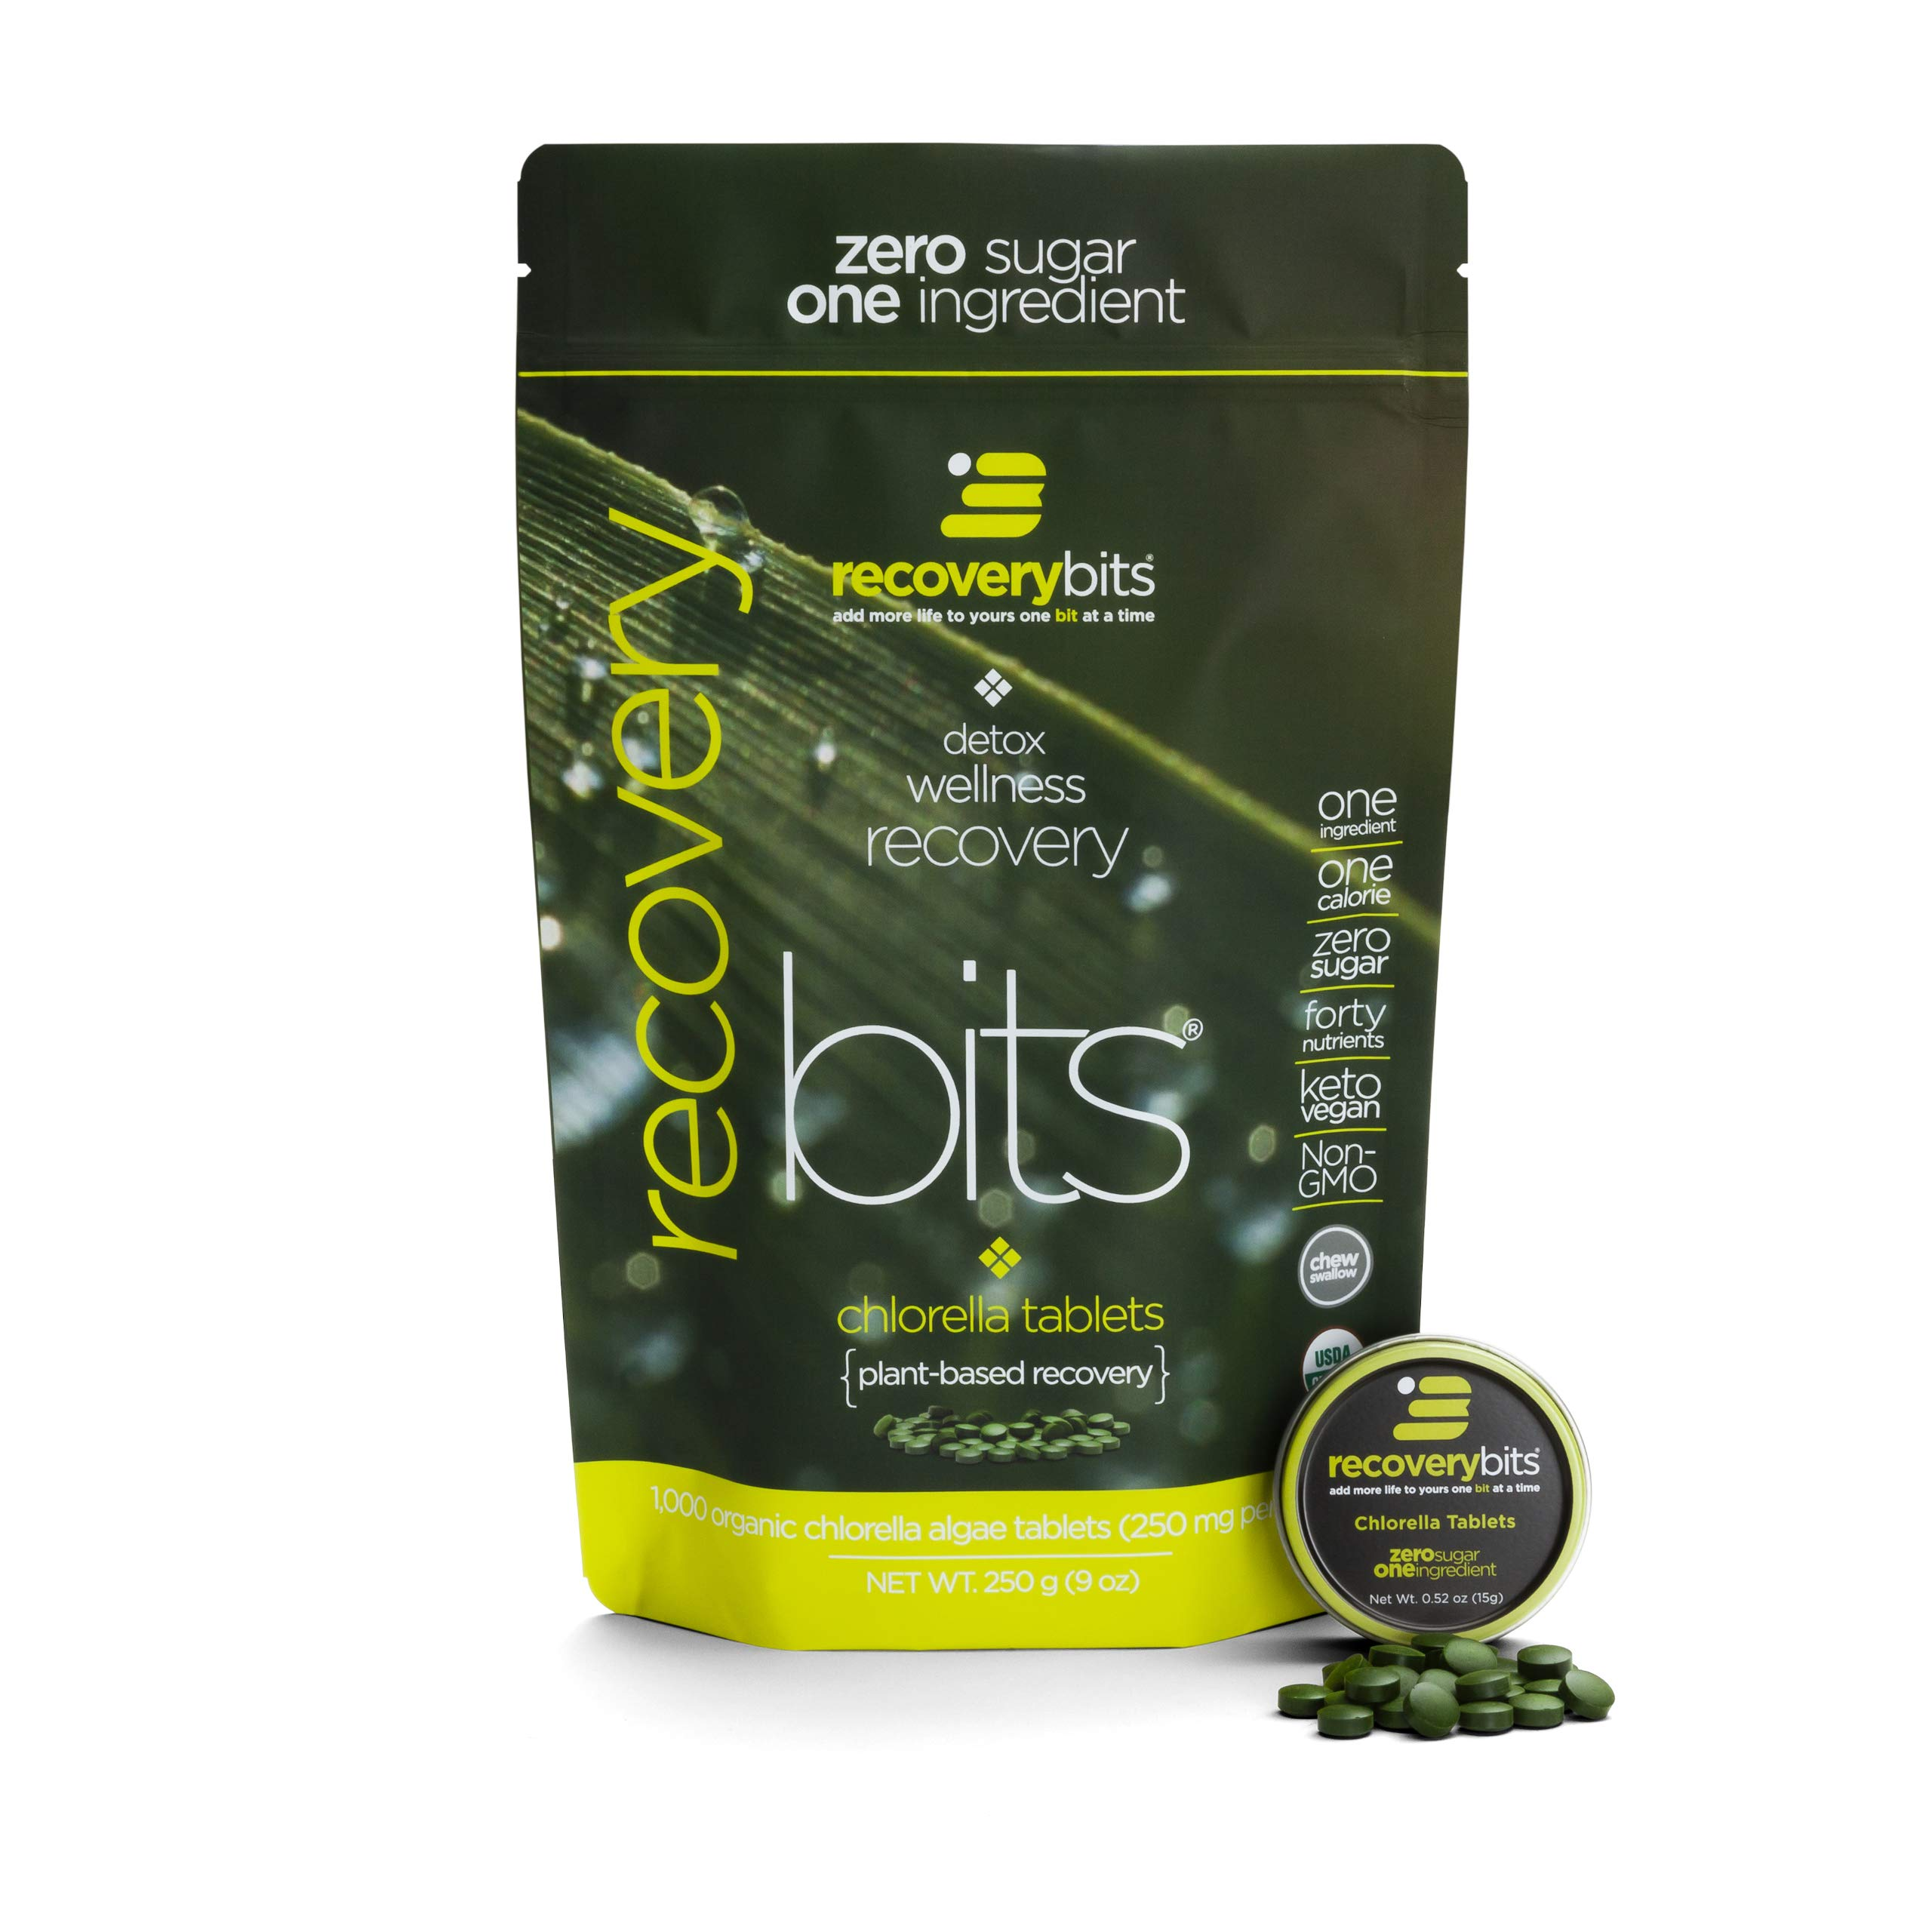 RECOVERYbits Pure Chlorella Tablets - Bag of 1,000 Tablets (250mg per Tablet) - Cracked Cell Wall, Non-GMO, Non-Irradiated, Raw, Green Algae - Keto, Vegan Friendly